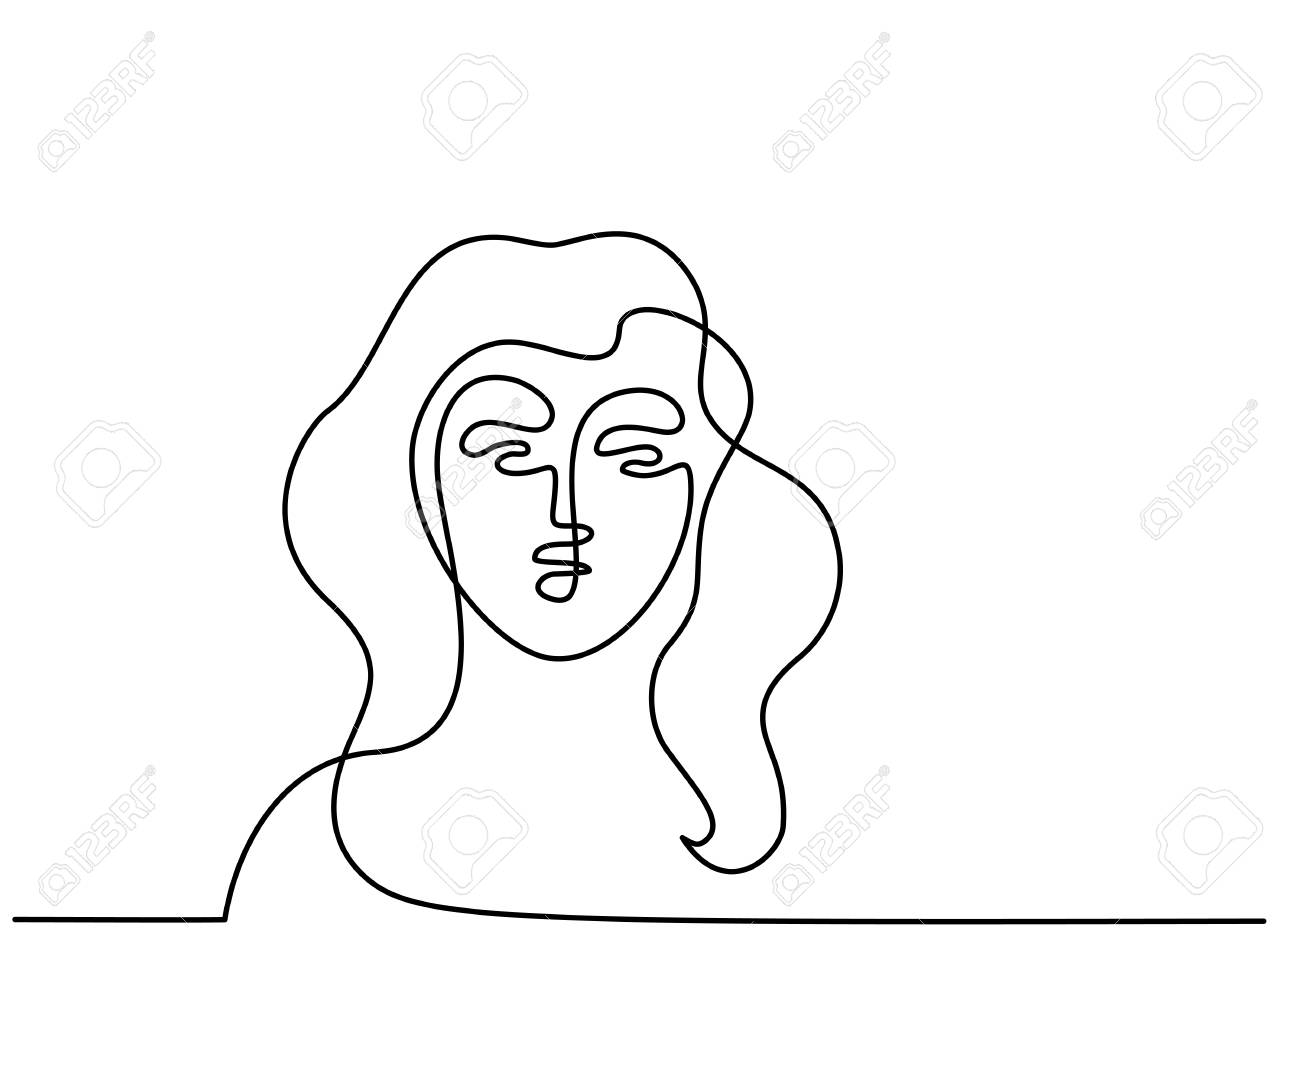 Continuous One Line Drawing Abstract Portrait Of A Woman Vector